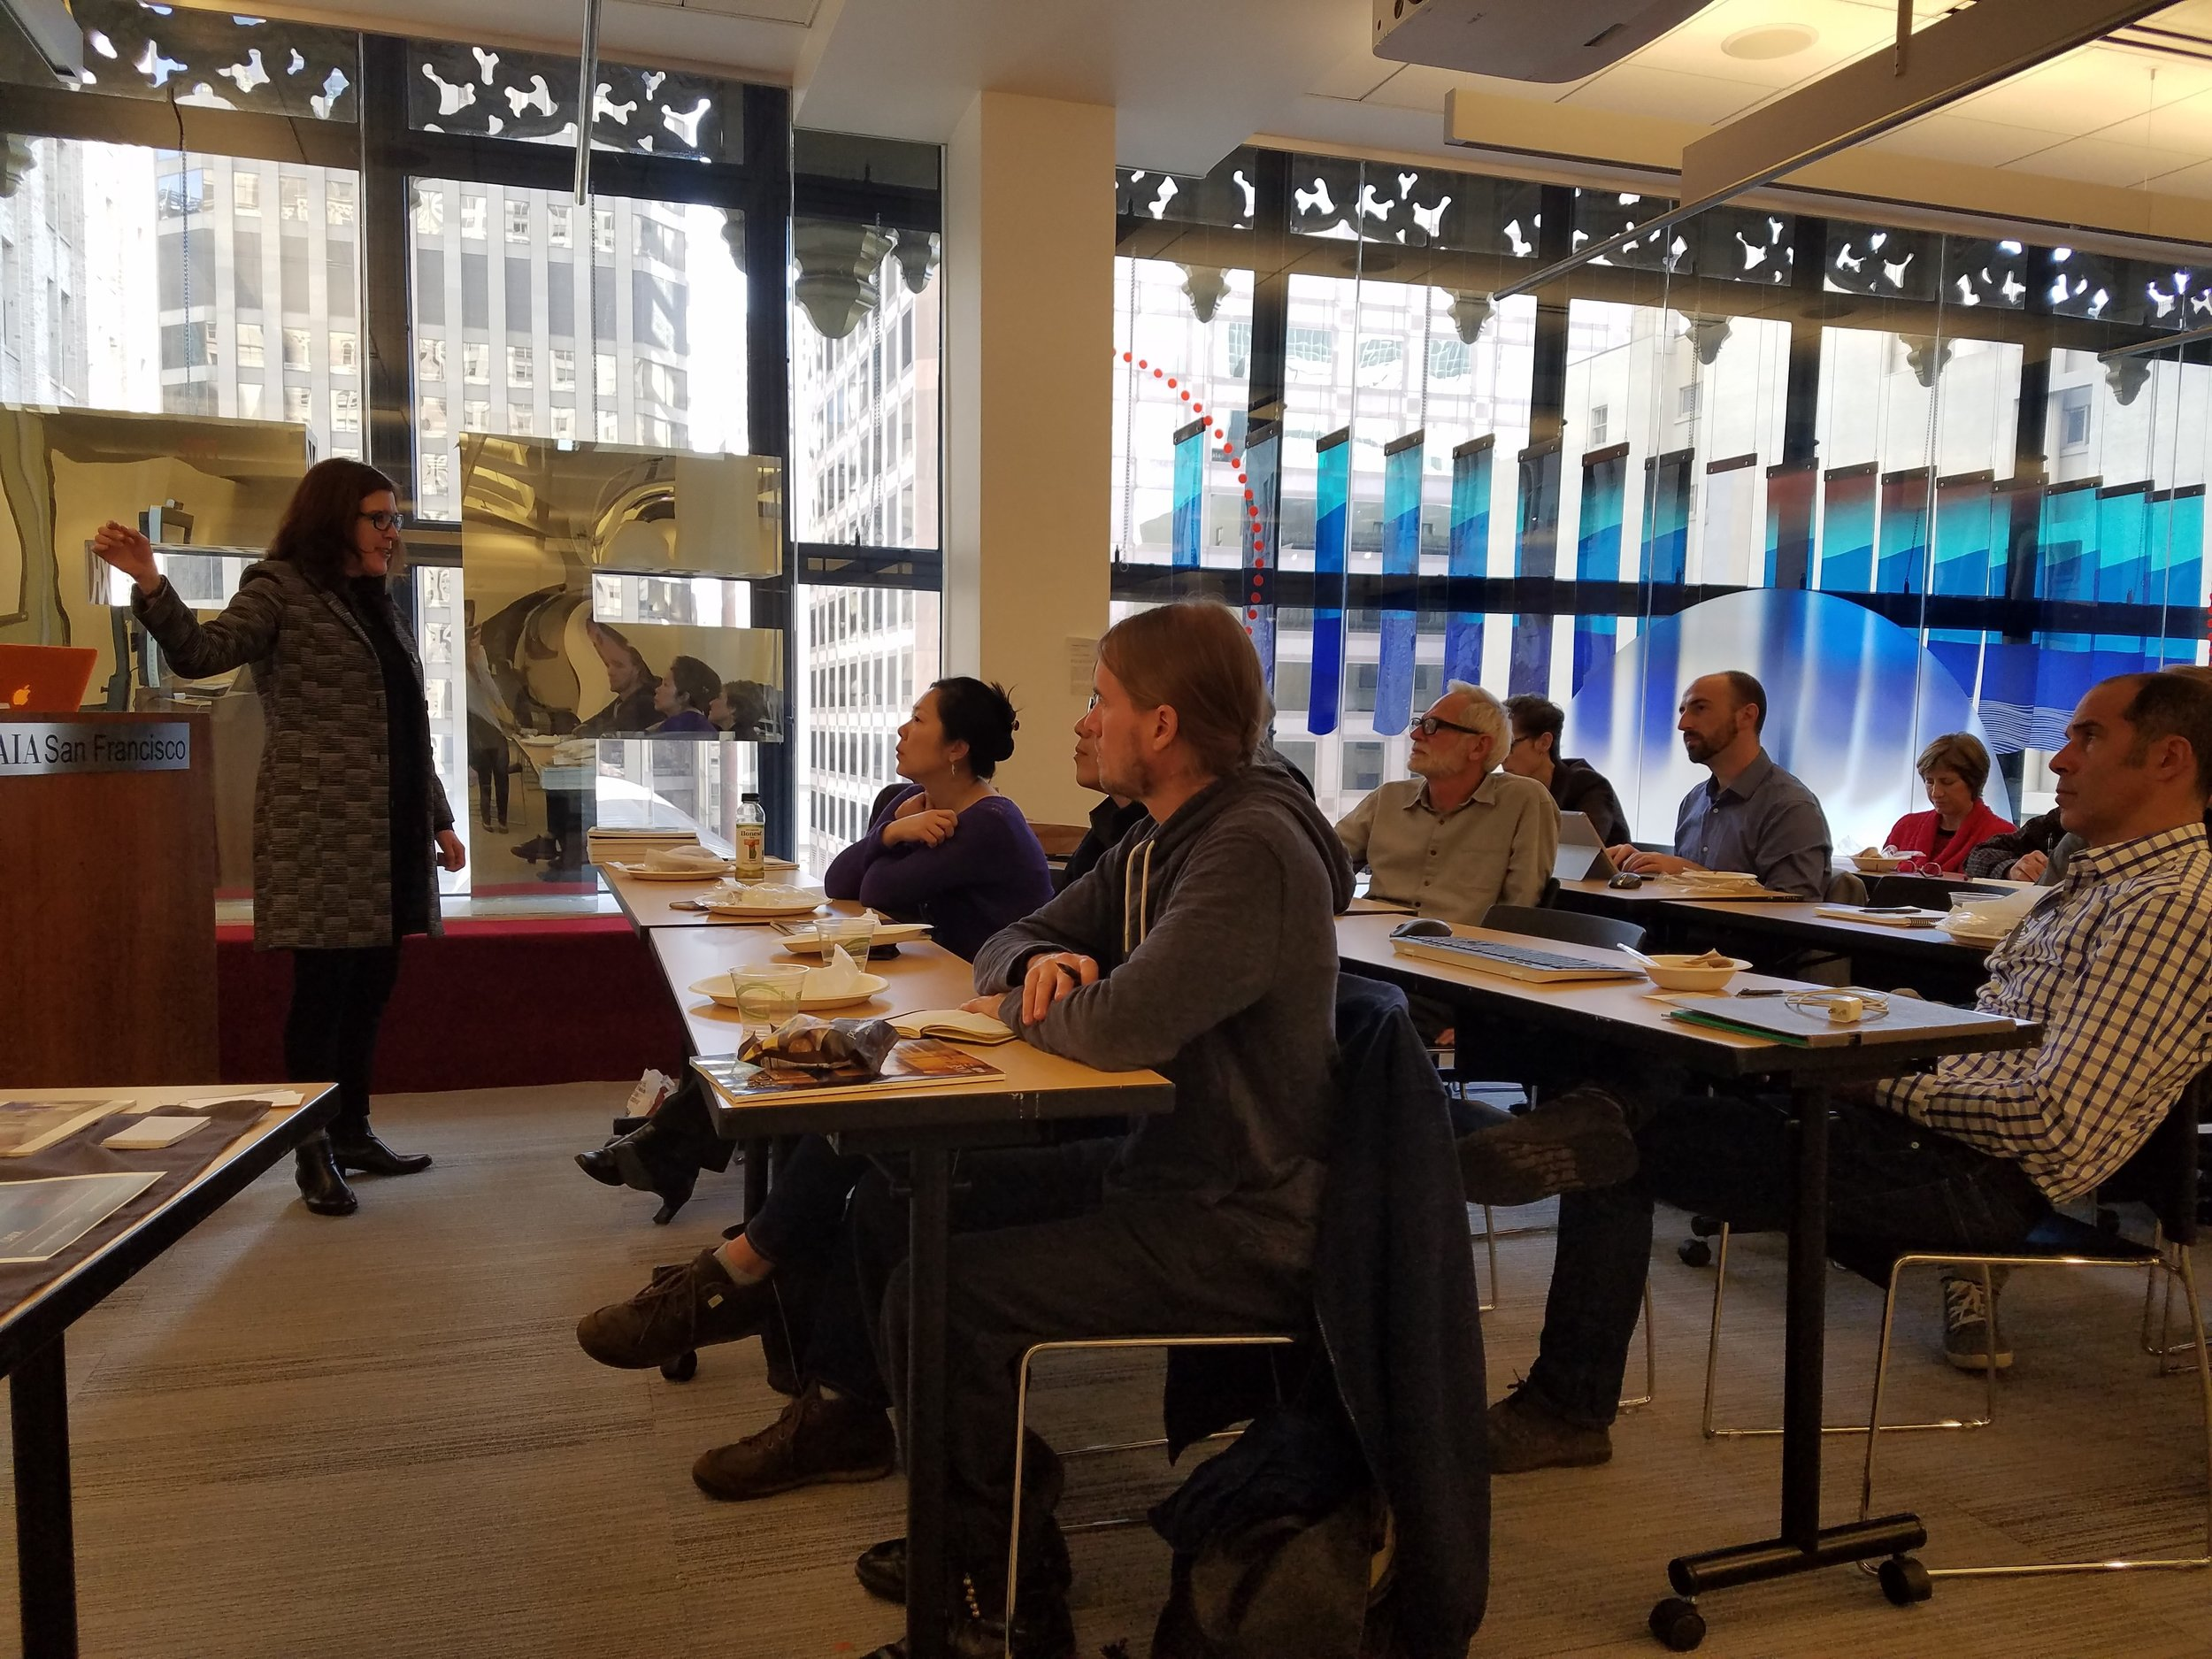 Therese Lahaie training architects and lighting designers in LED Lighting technology at AIA headquarters in San Francisco, California.